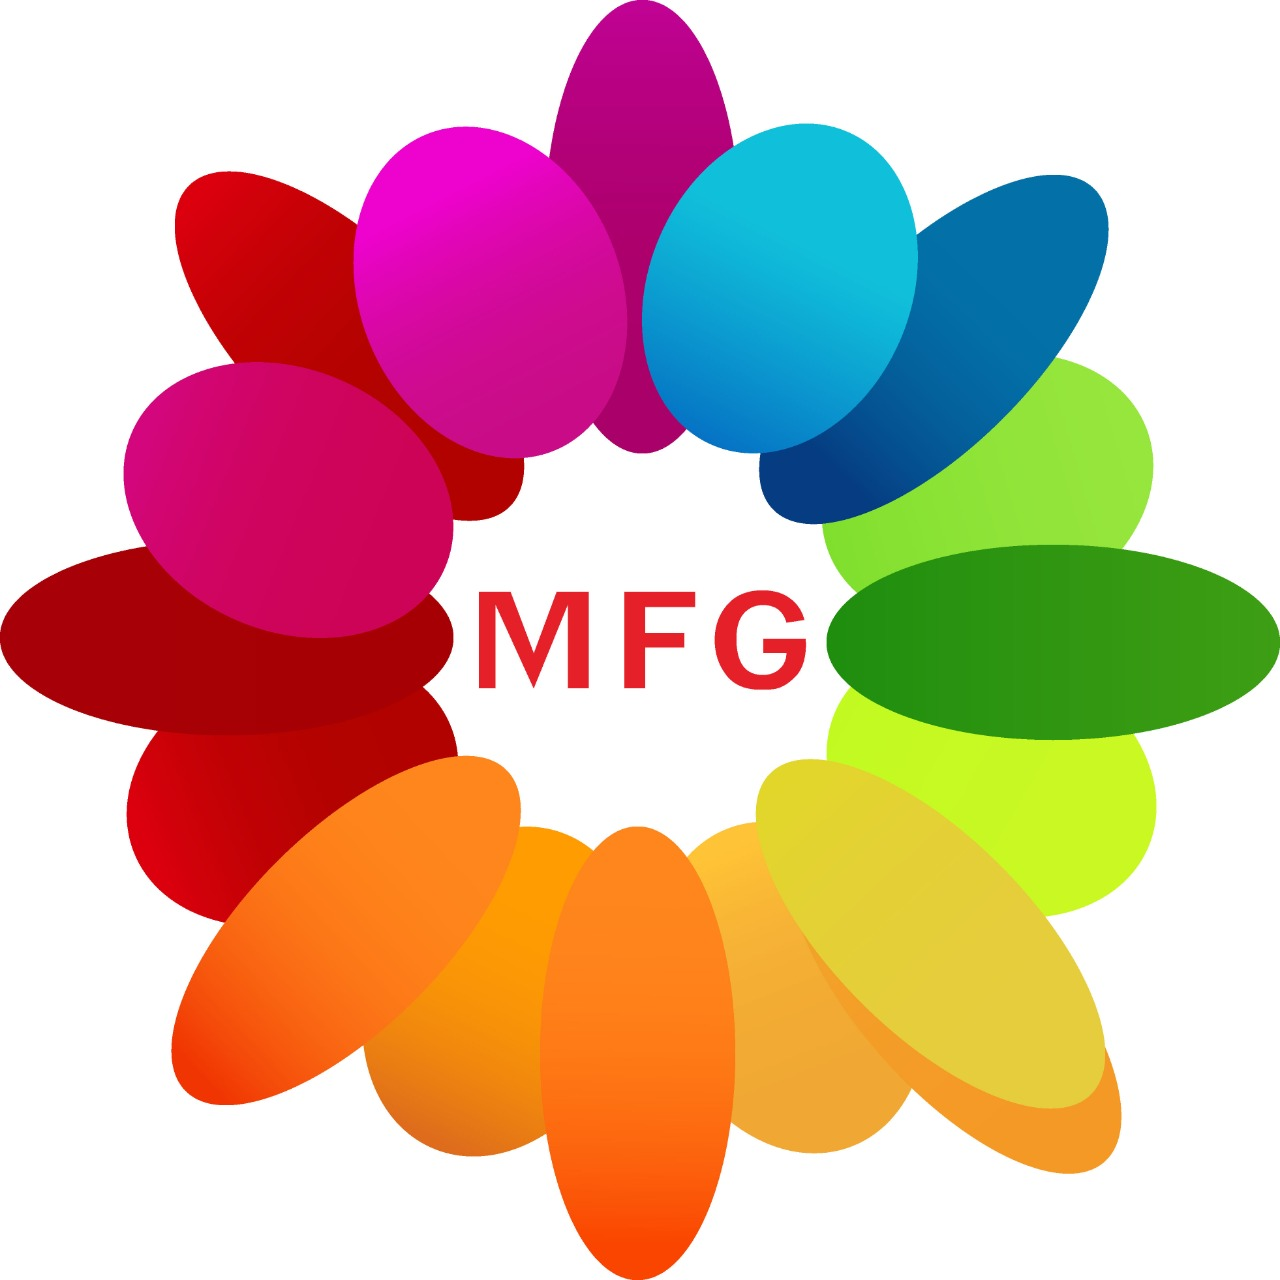 1 kg German Chocolate Truffle Premium Quality Cake